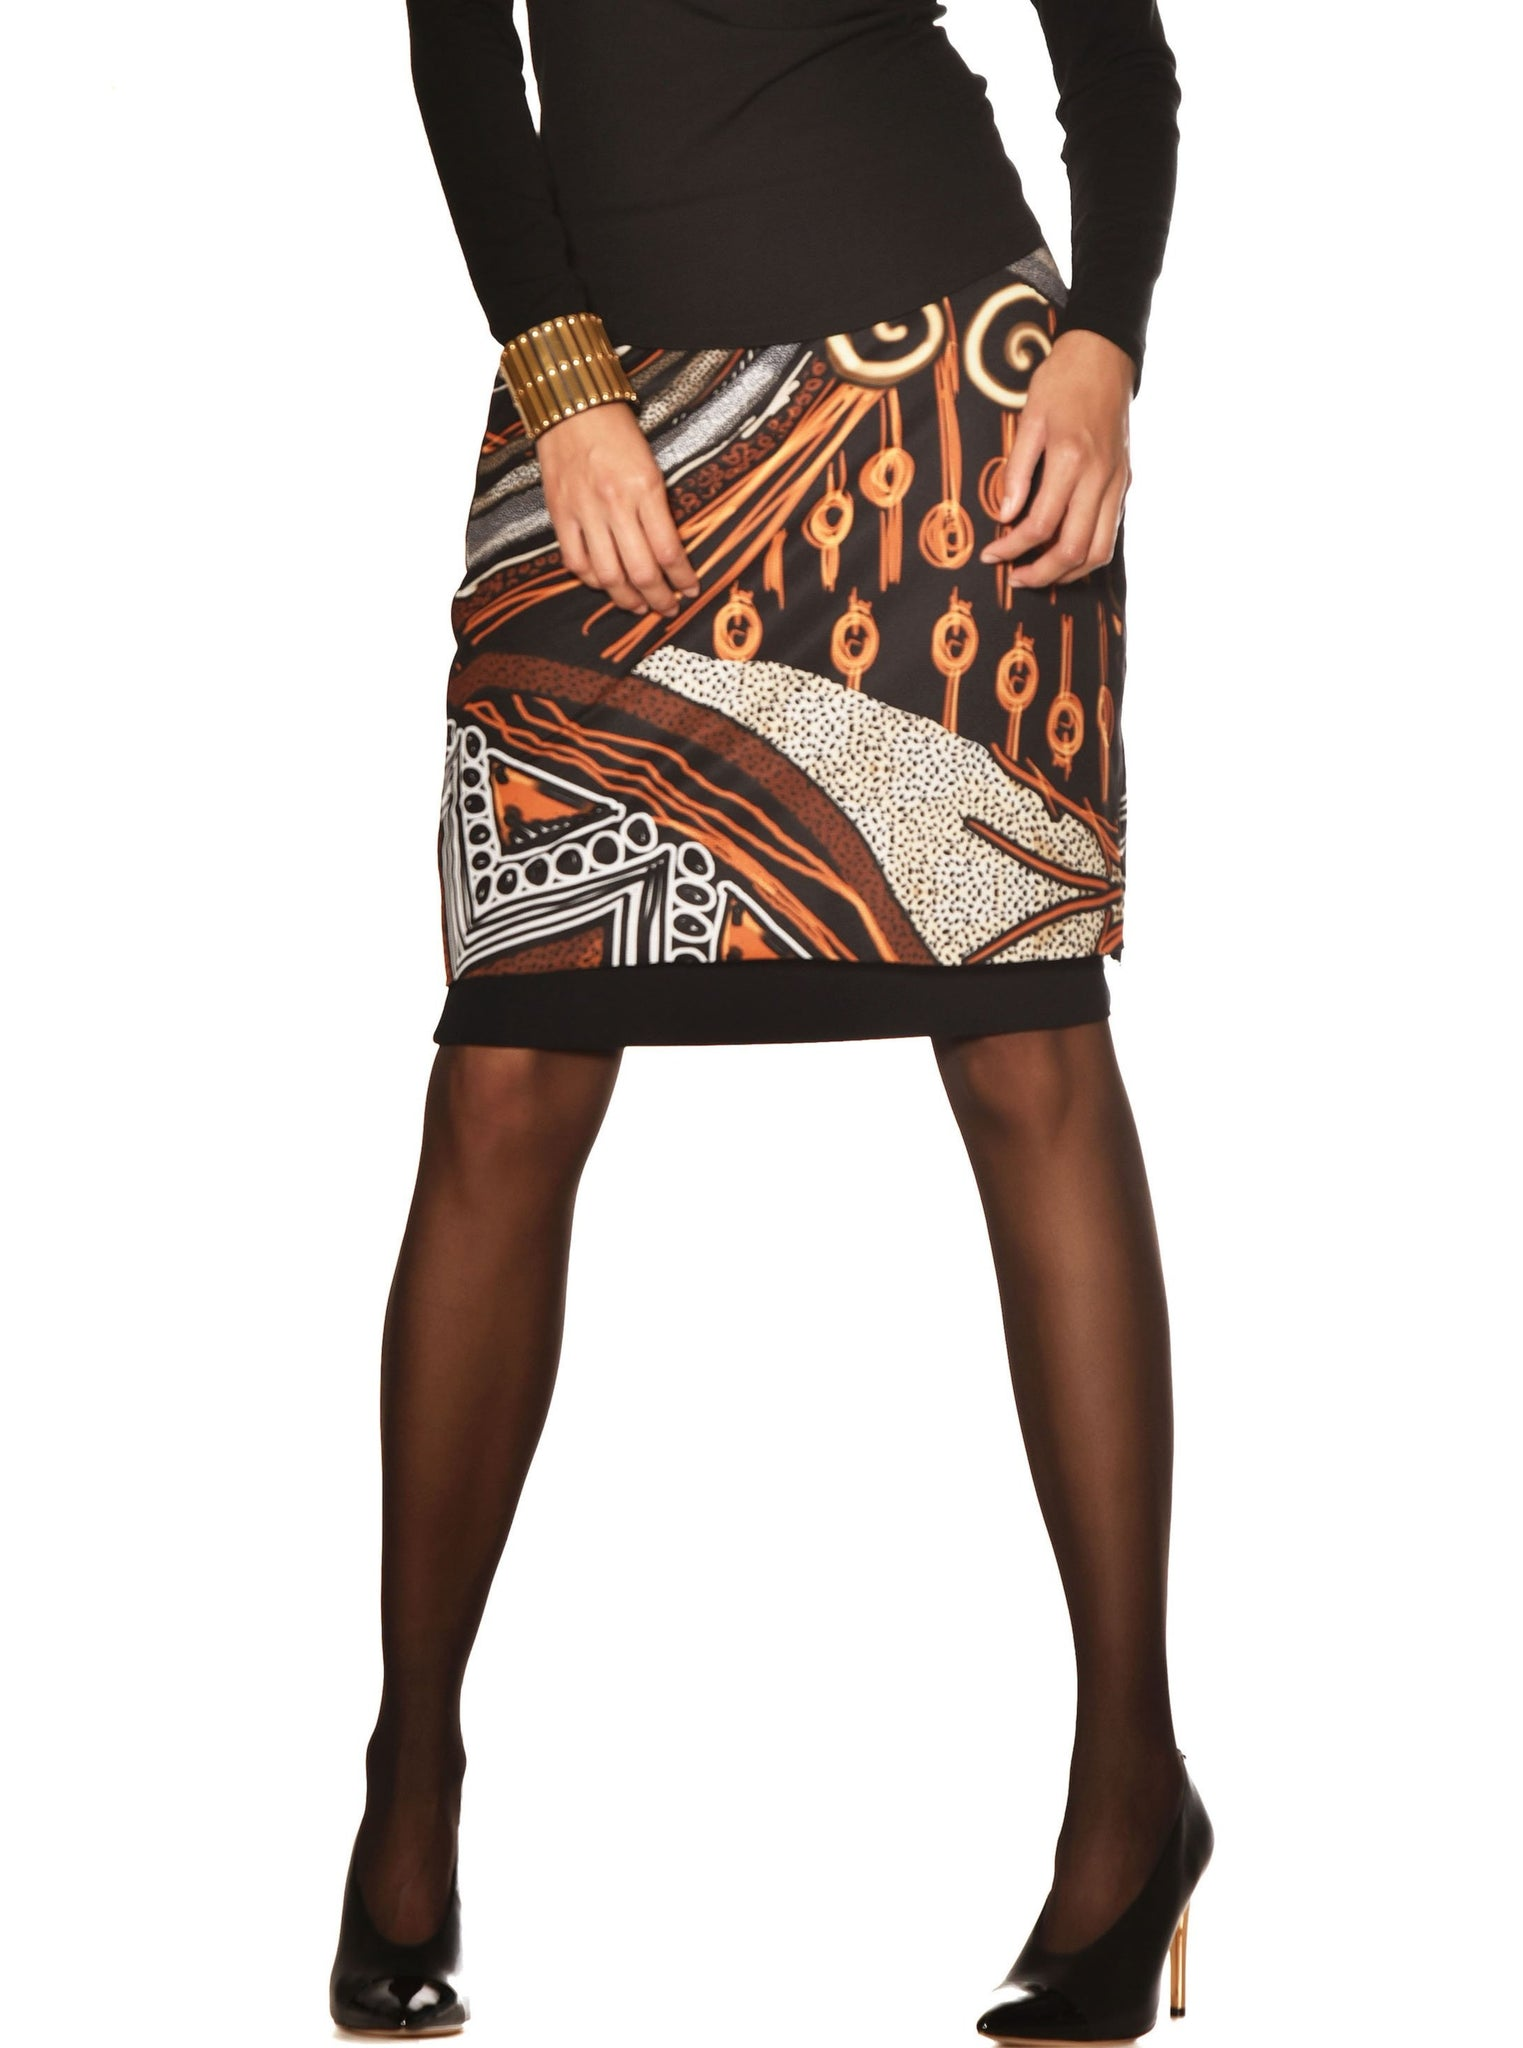 Paula Ryan Mesh Print Pencil skirt 8108 Paula Ryan skirt stockist sydney australia online Signature of Double Bay Paula Ryan curated collection fashion boutique